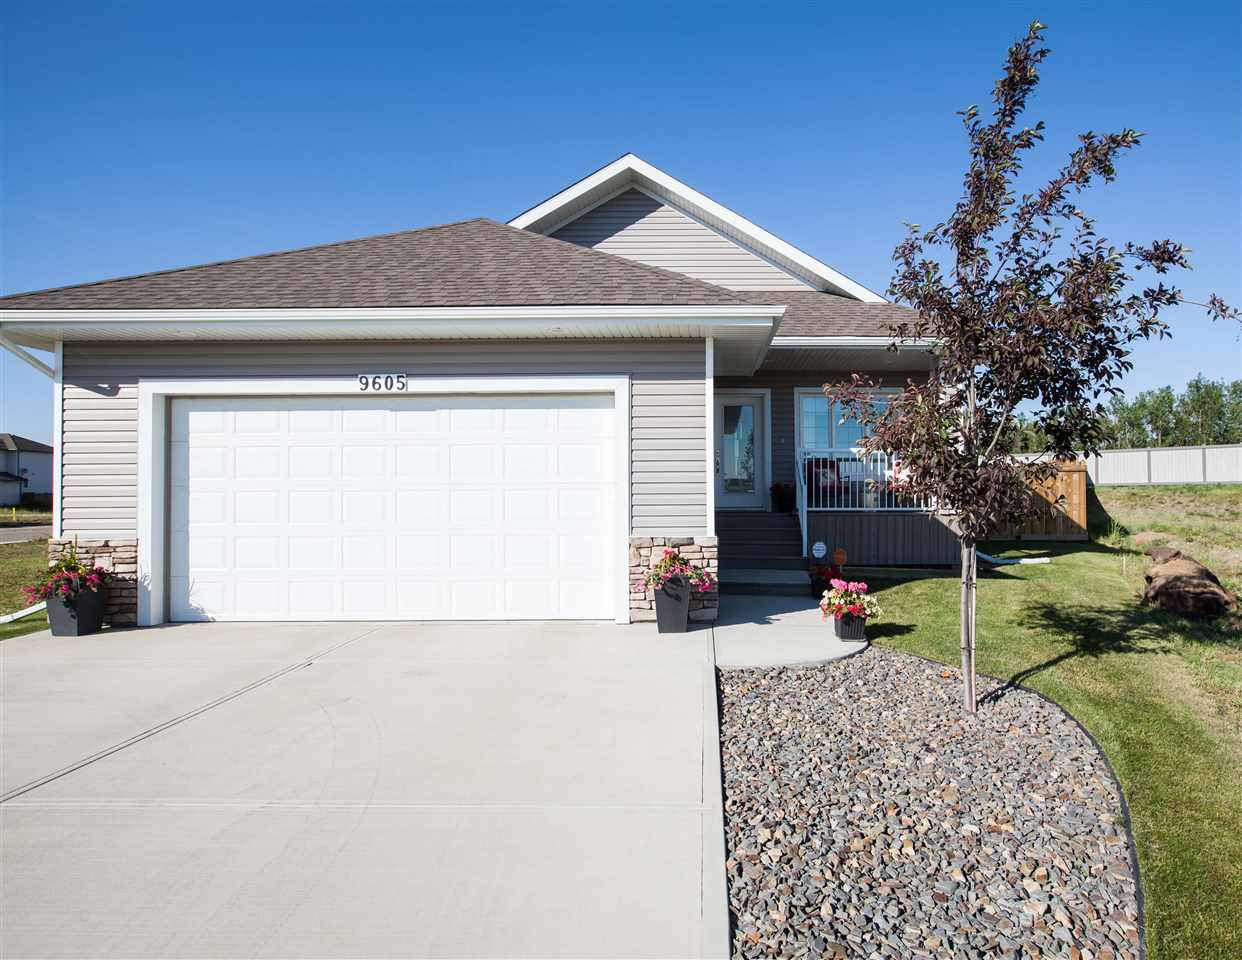 Main Photo: 9605 88 Street: Morinville House for sale : MLS(r) # E4071743